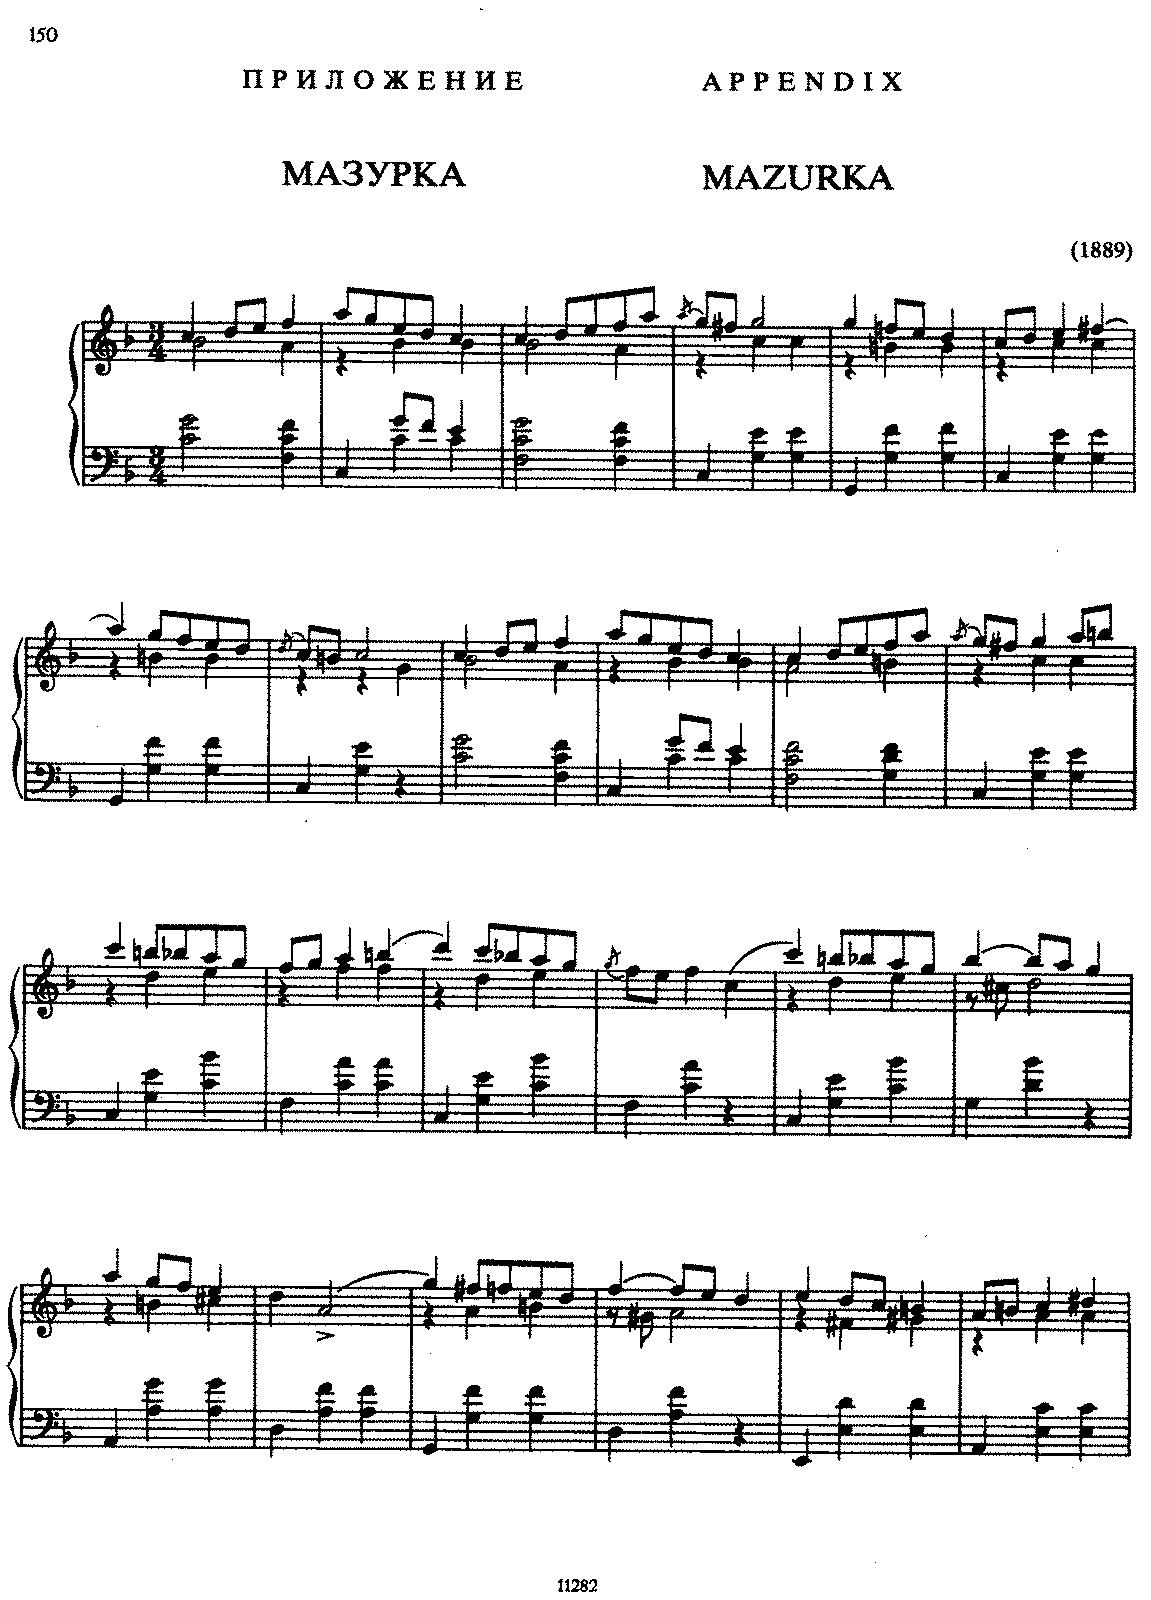 Scriabin - Op.misc - Mazurka in F Major (1889).pdf